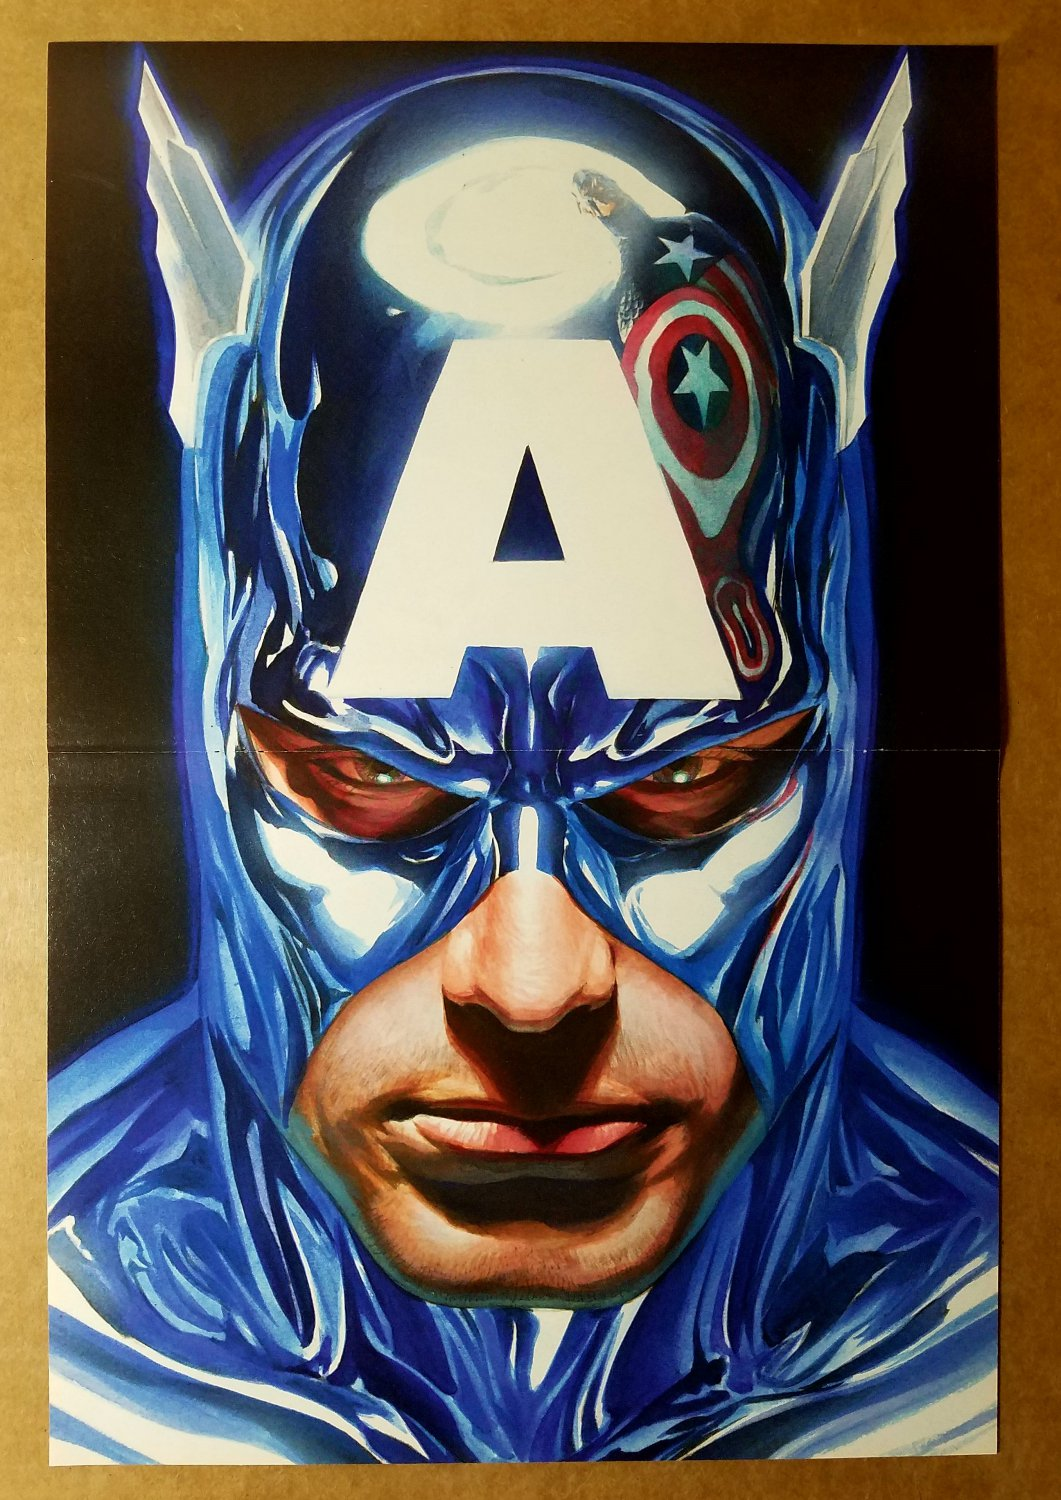 Captain America shiny suit Marvel Comic Poster by Alex Ross